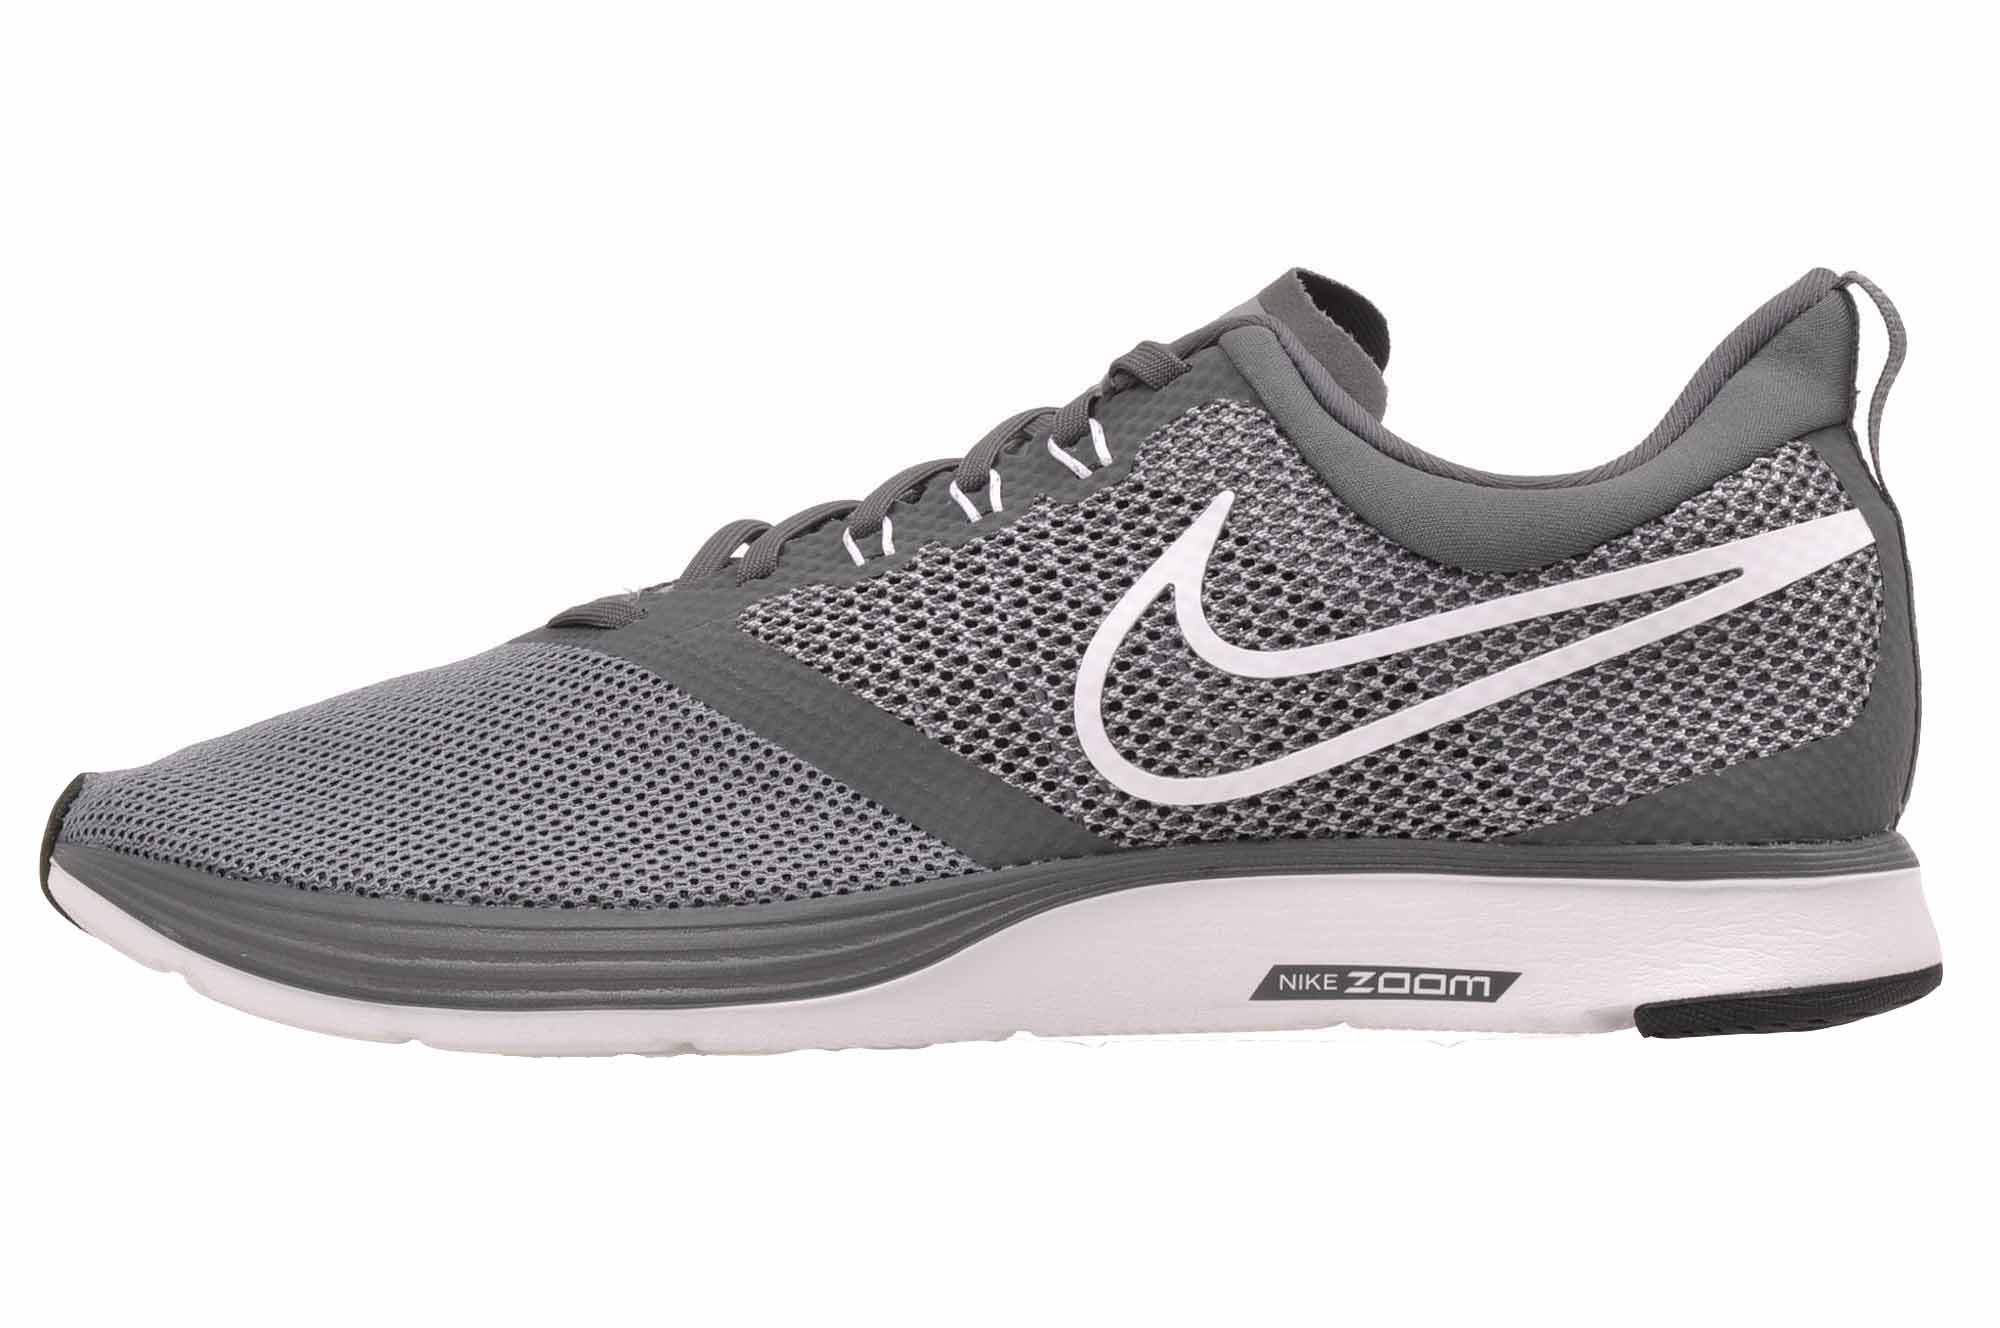 Nike Zoom Strike Running Shoes Mens Dark Grey AJ0189-002